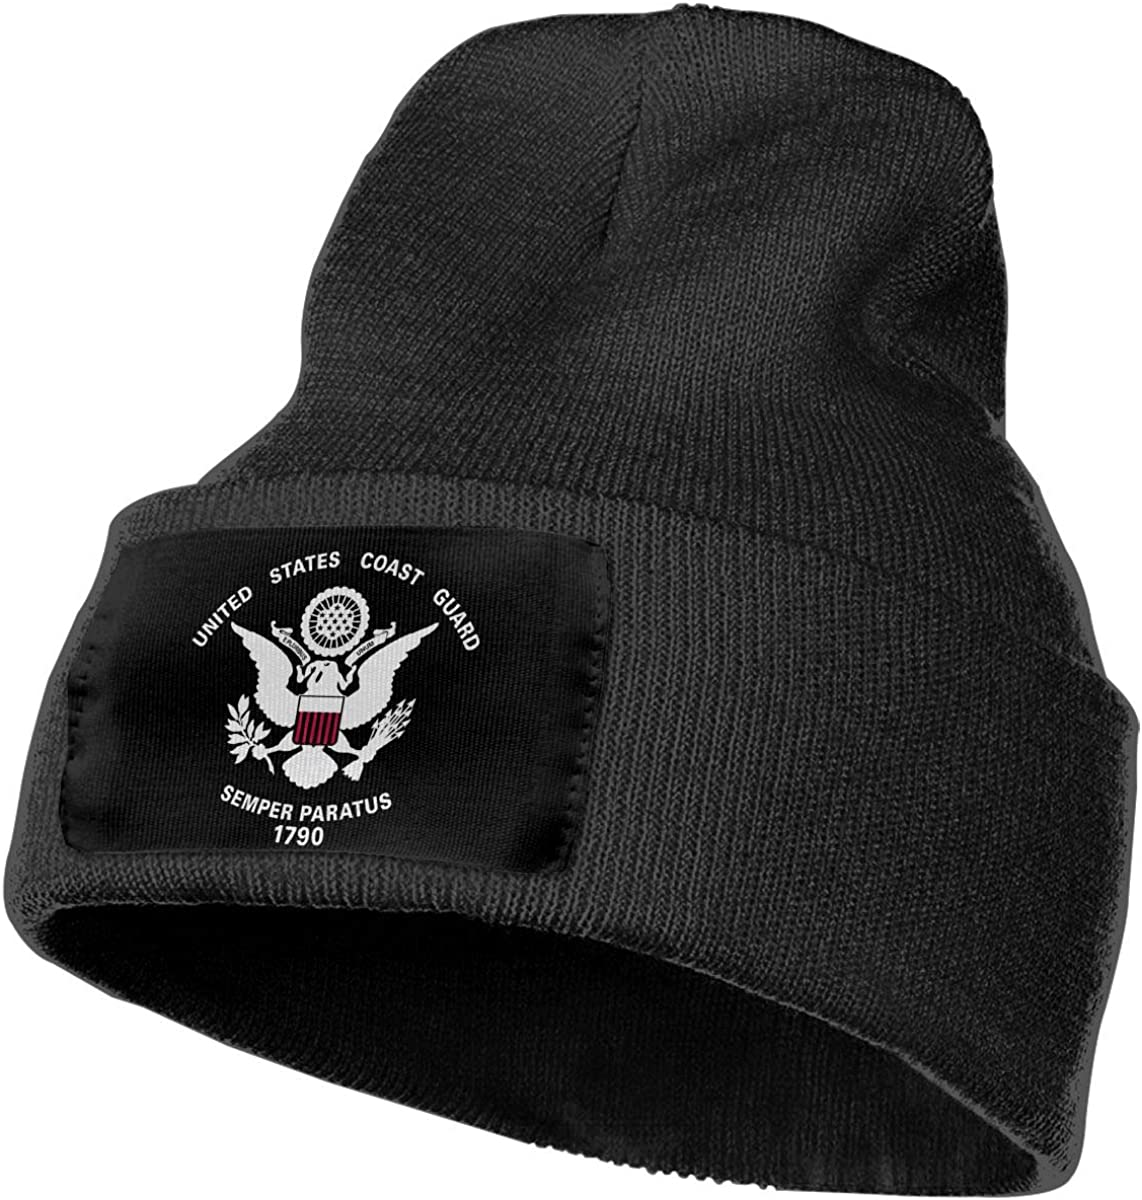 Thick,Soft,Warm Slouchy Knit Hat Winter Soft Ski Cap Mens/&Womens United States Coast Guard 1790 Beanie Cap